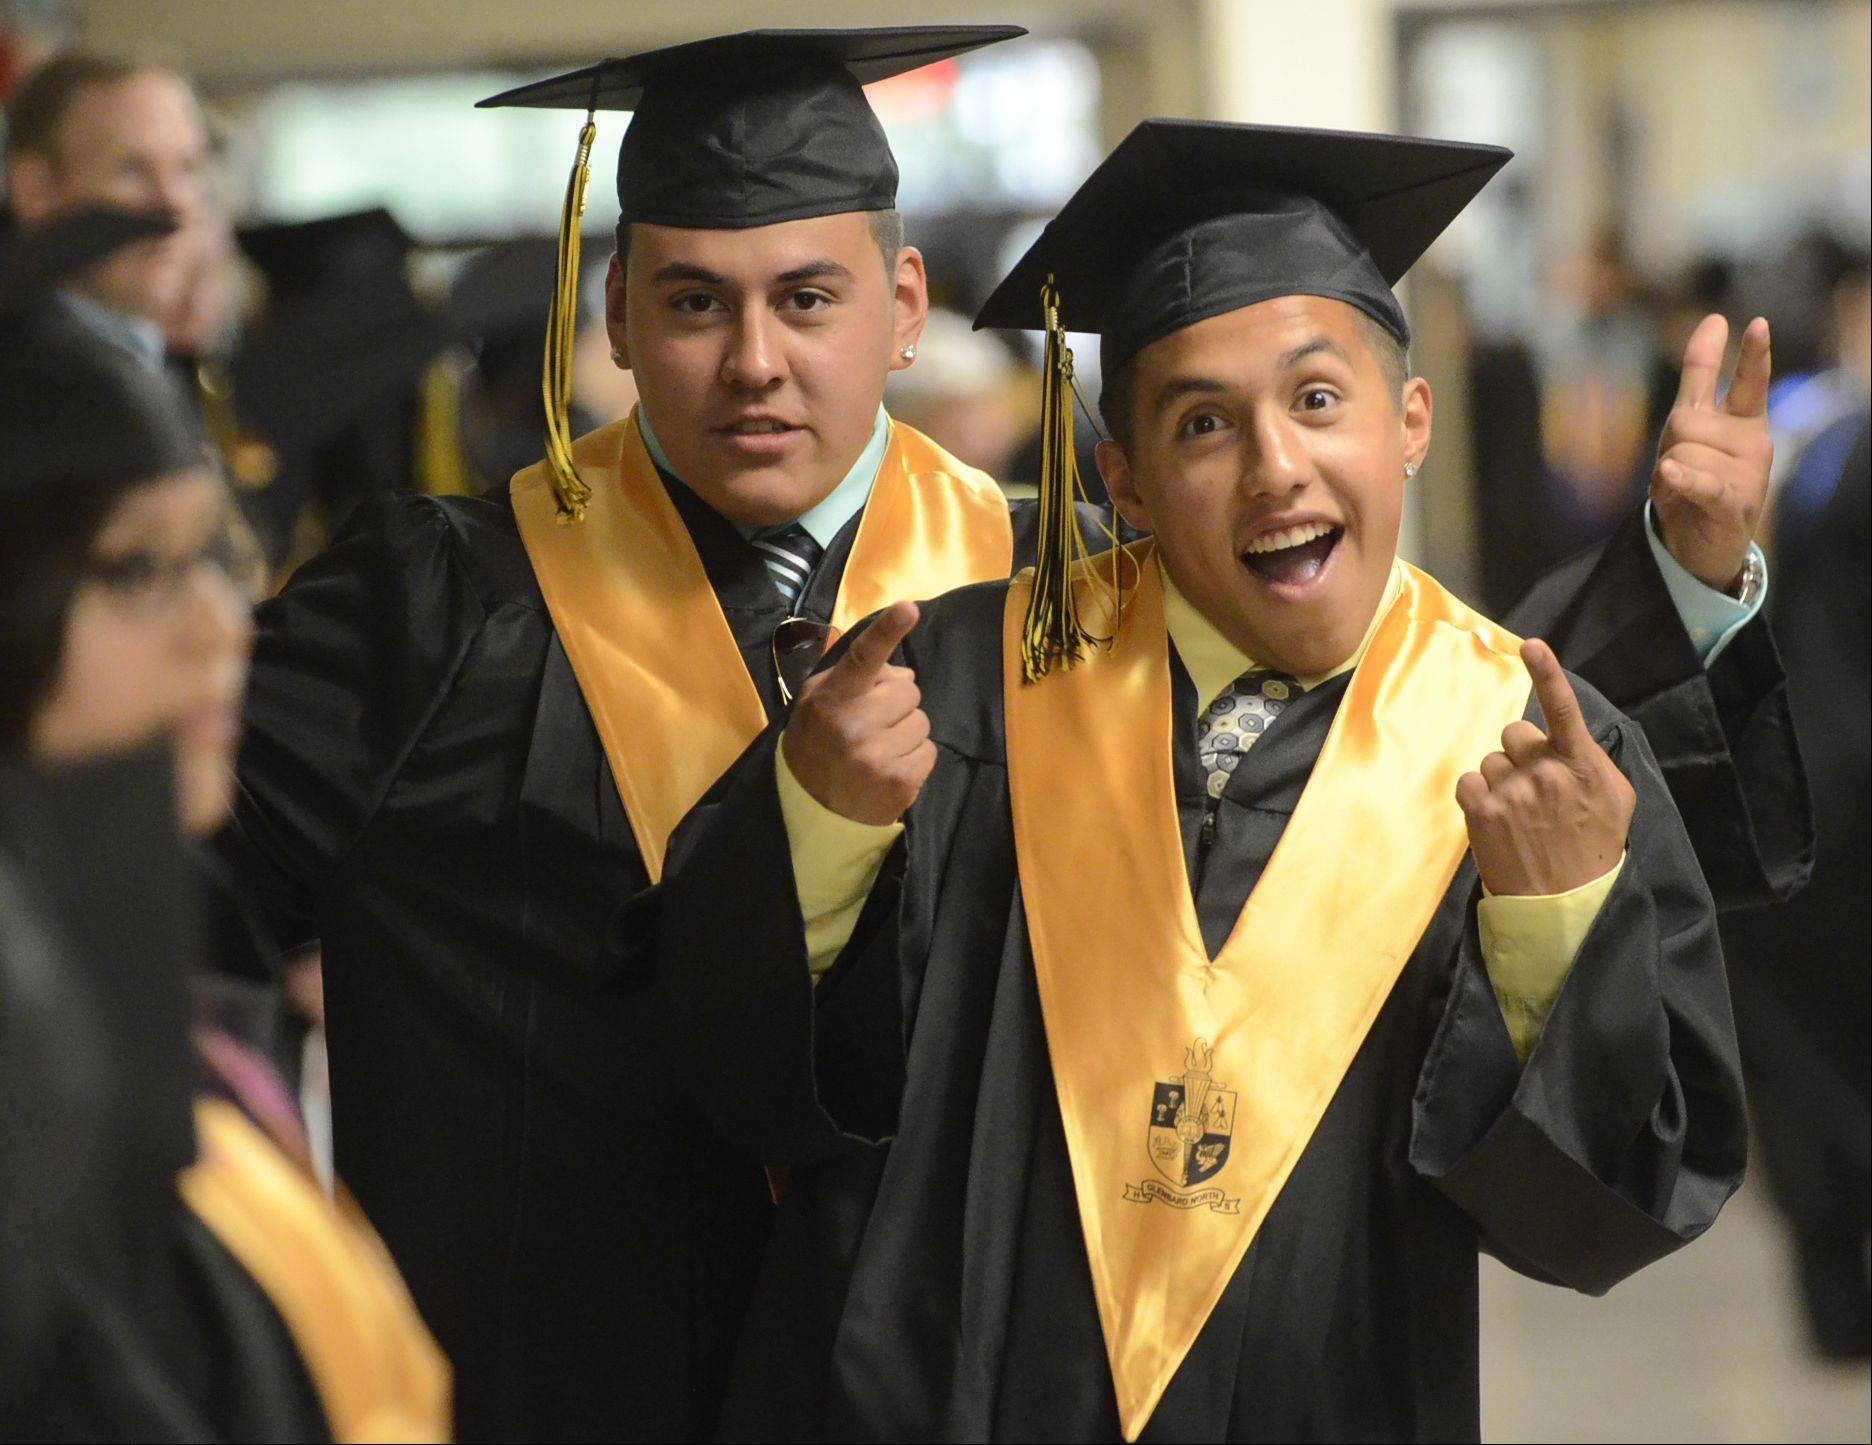 Images from the Glenbard North High School graduation on Friday, May 31 at the school in Carol Stream.